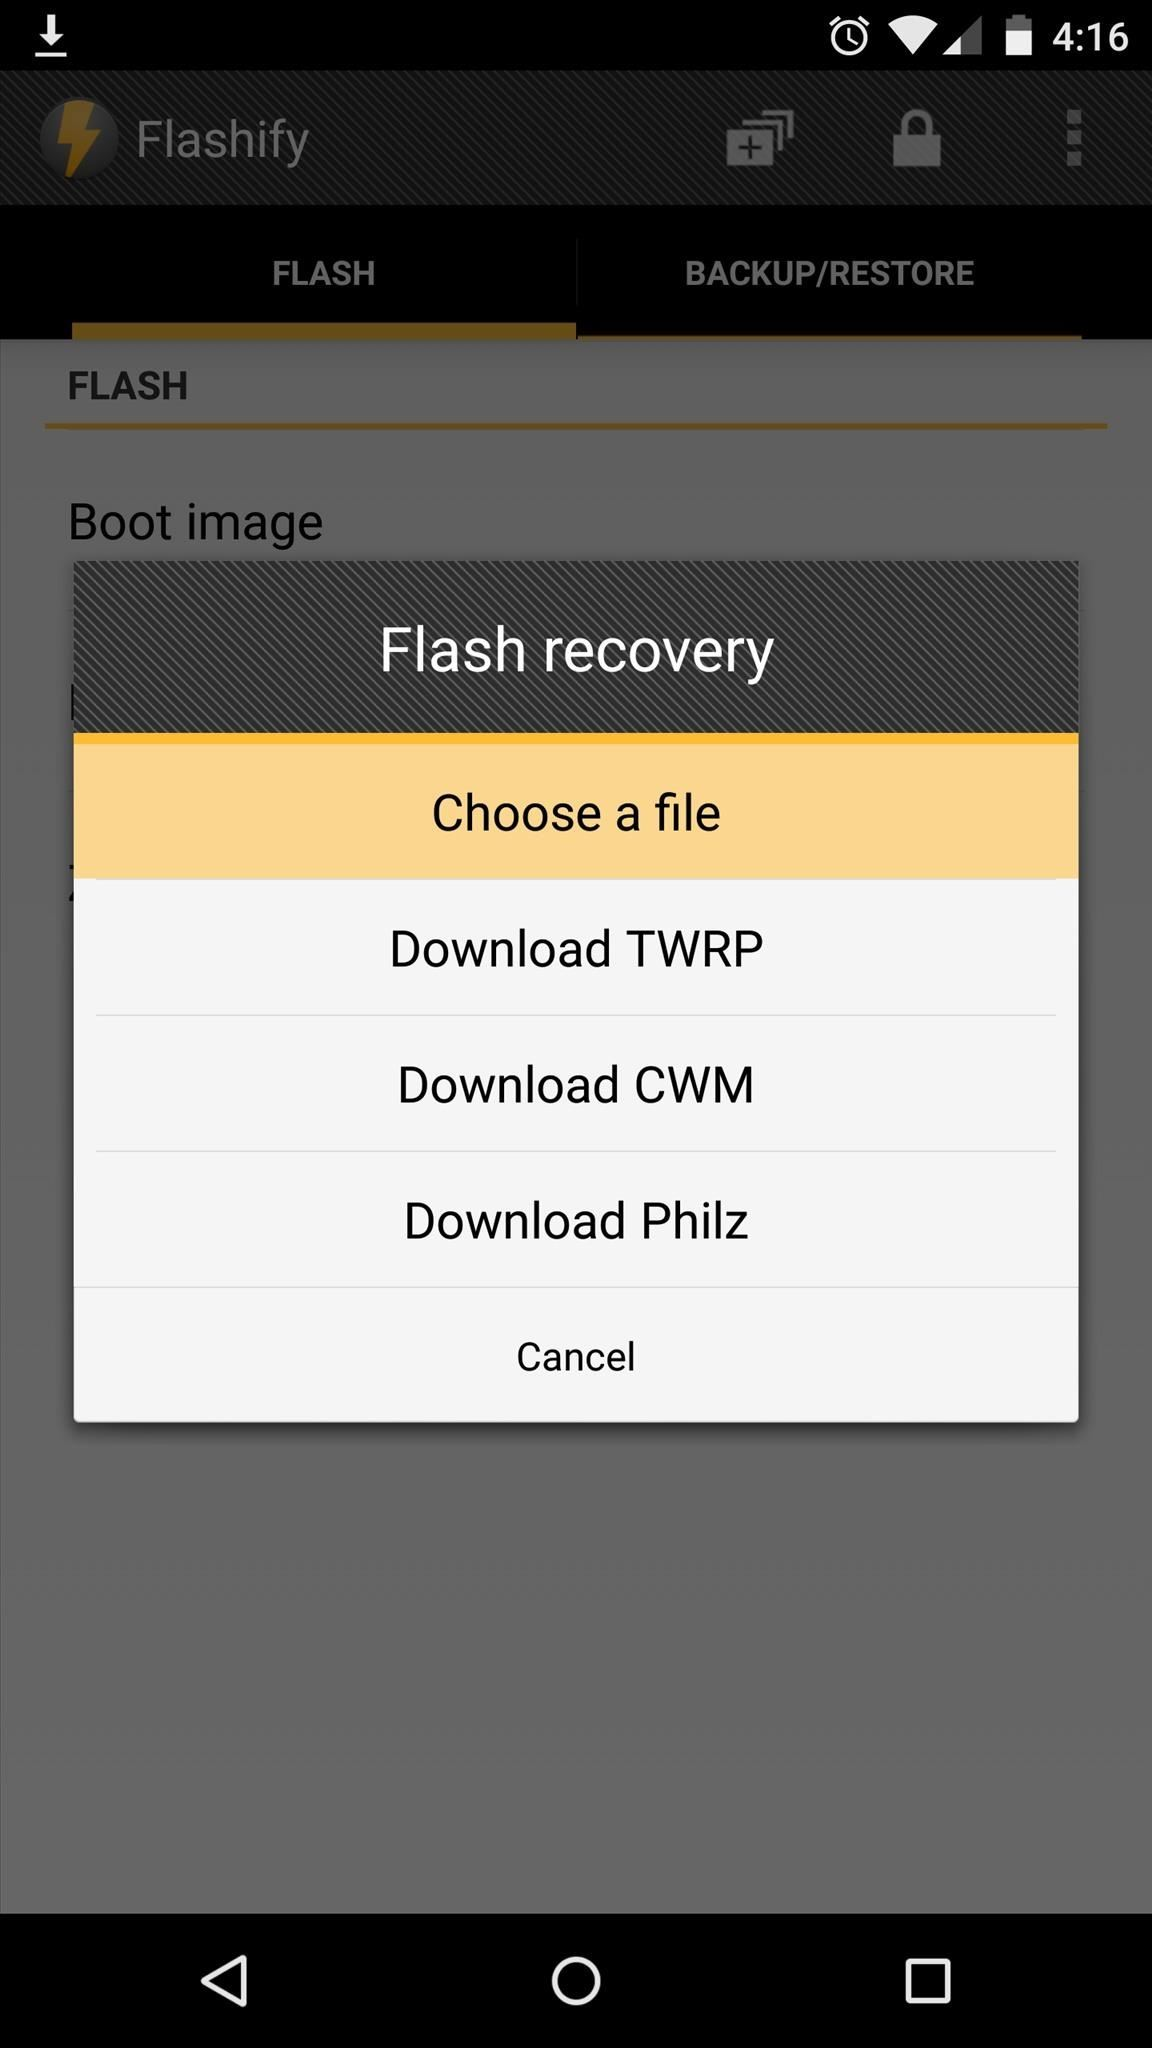 How to Install a Custom Recovery on the Nexus 6